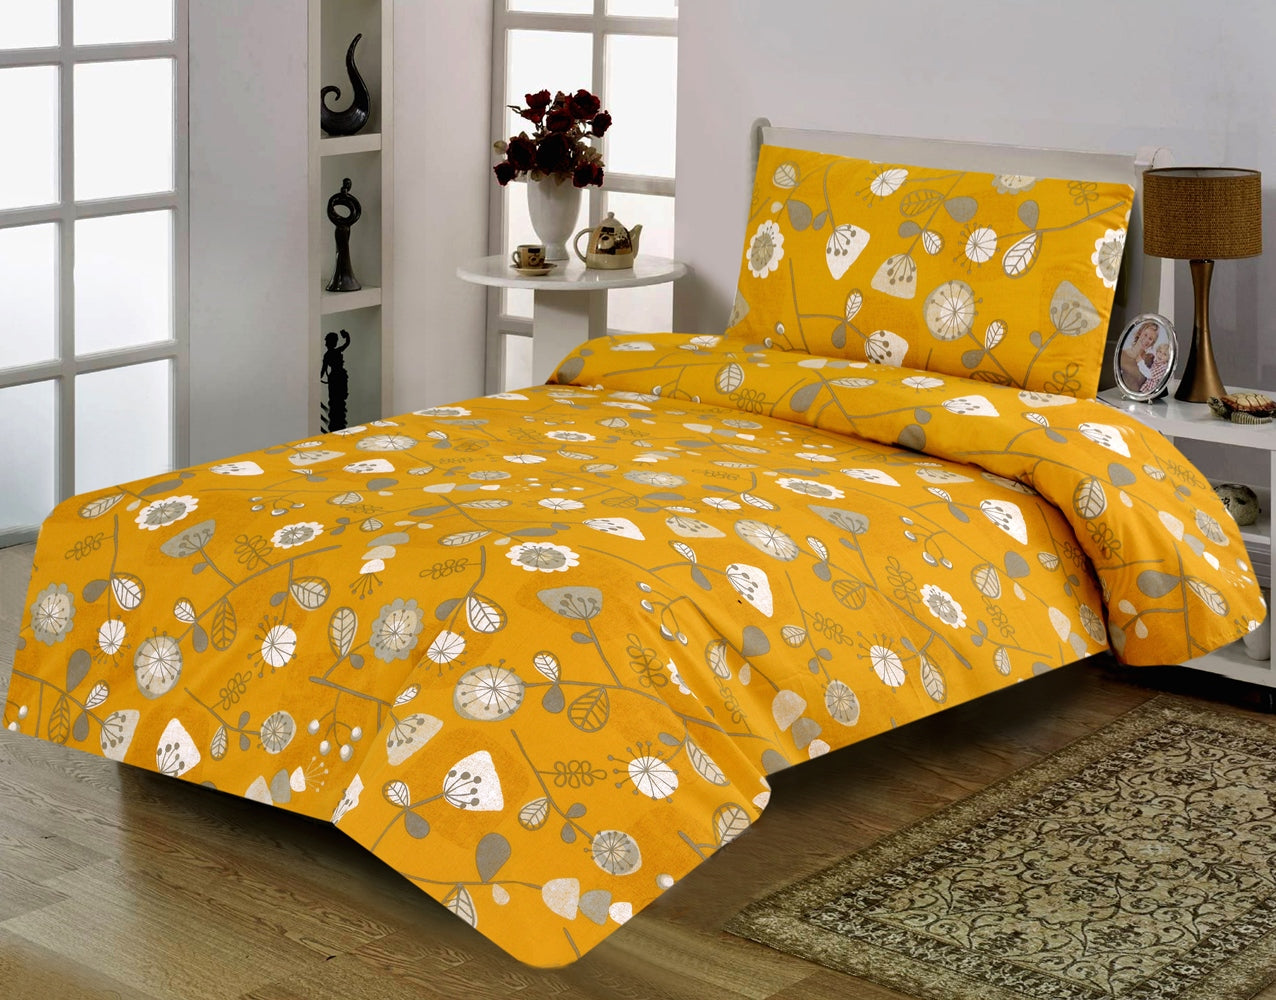 Khas Stores 2 Pcs Single Bed Sheet  R2G 16188